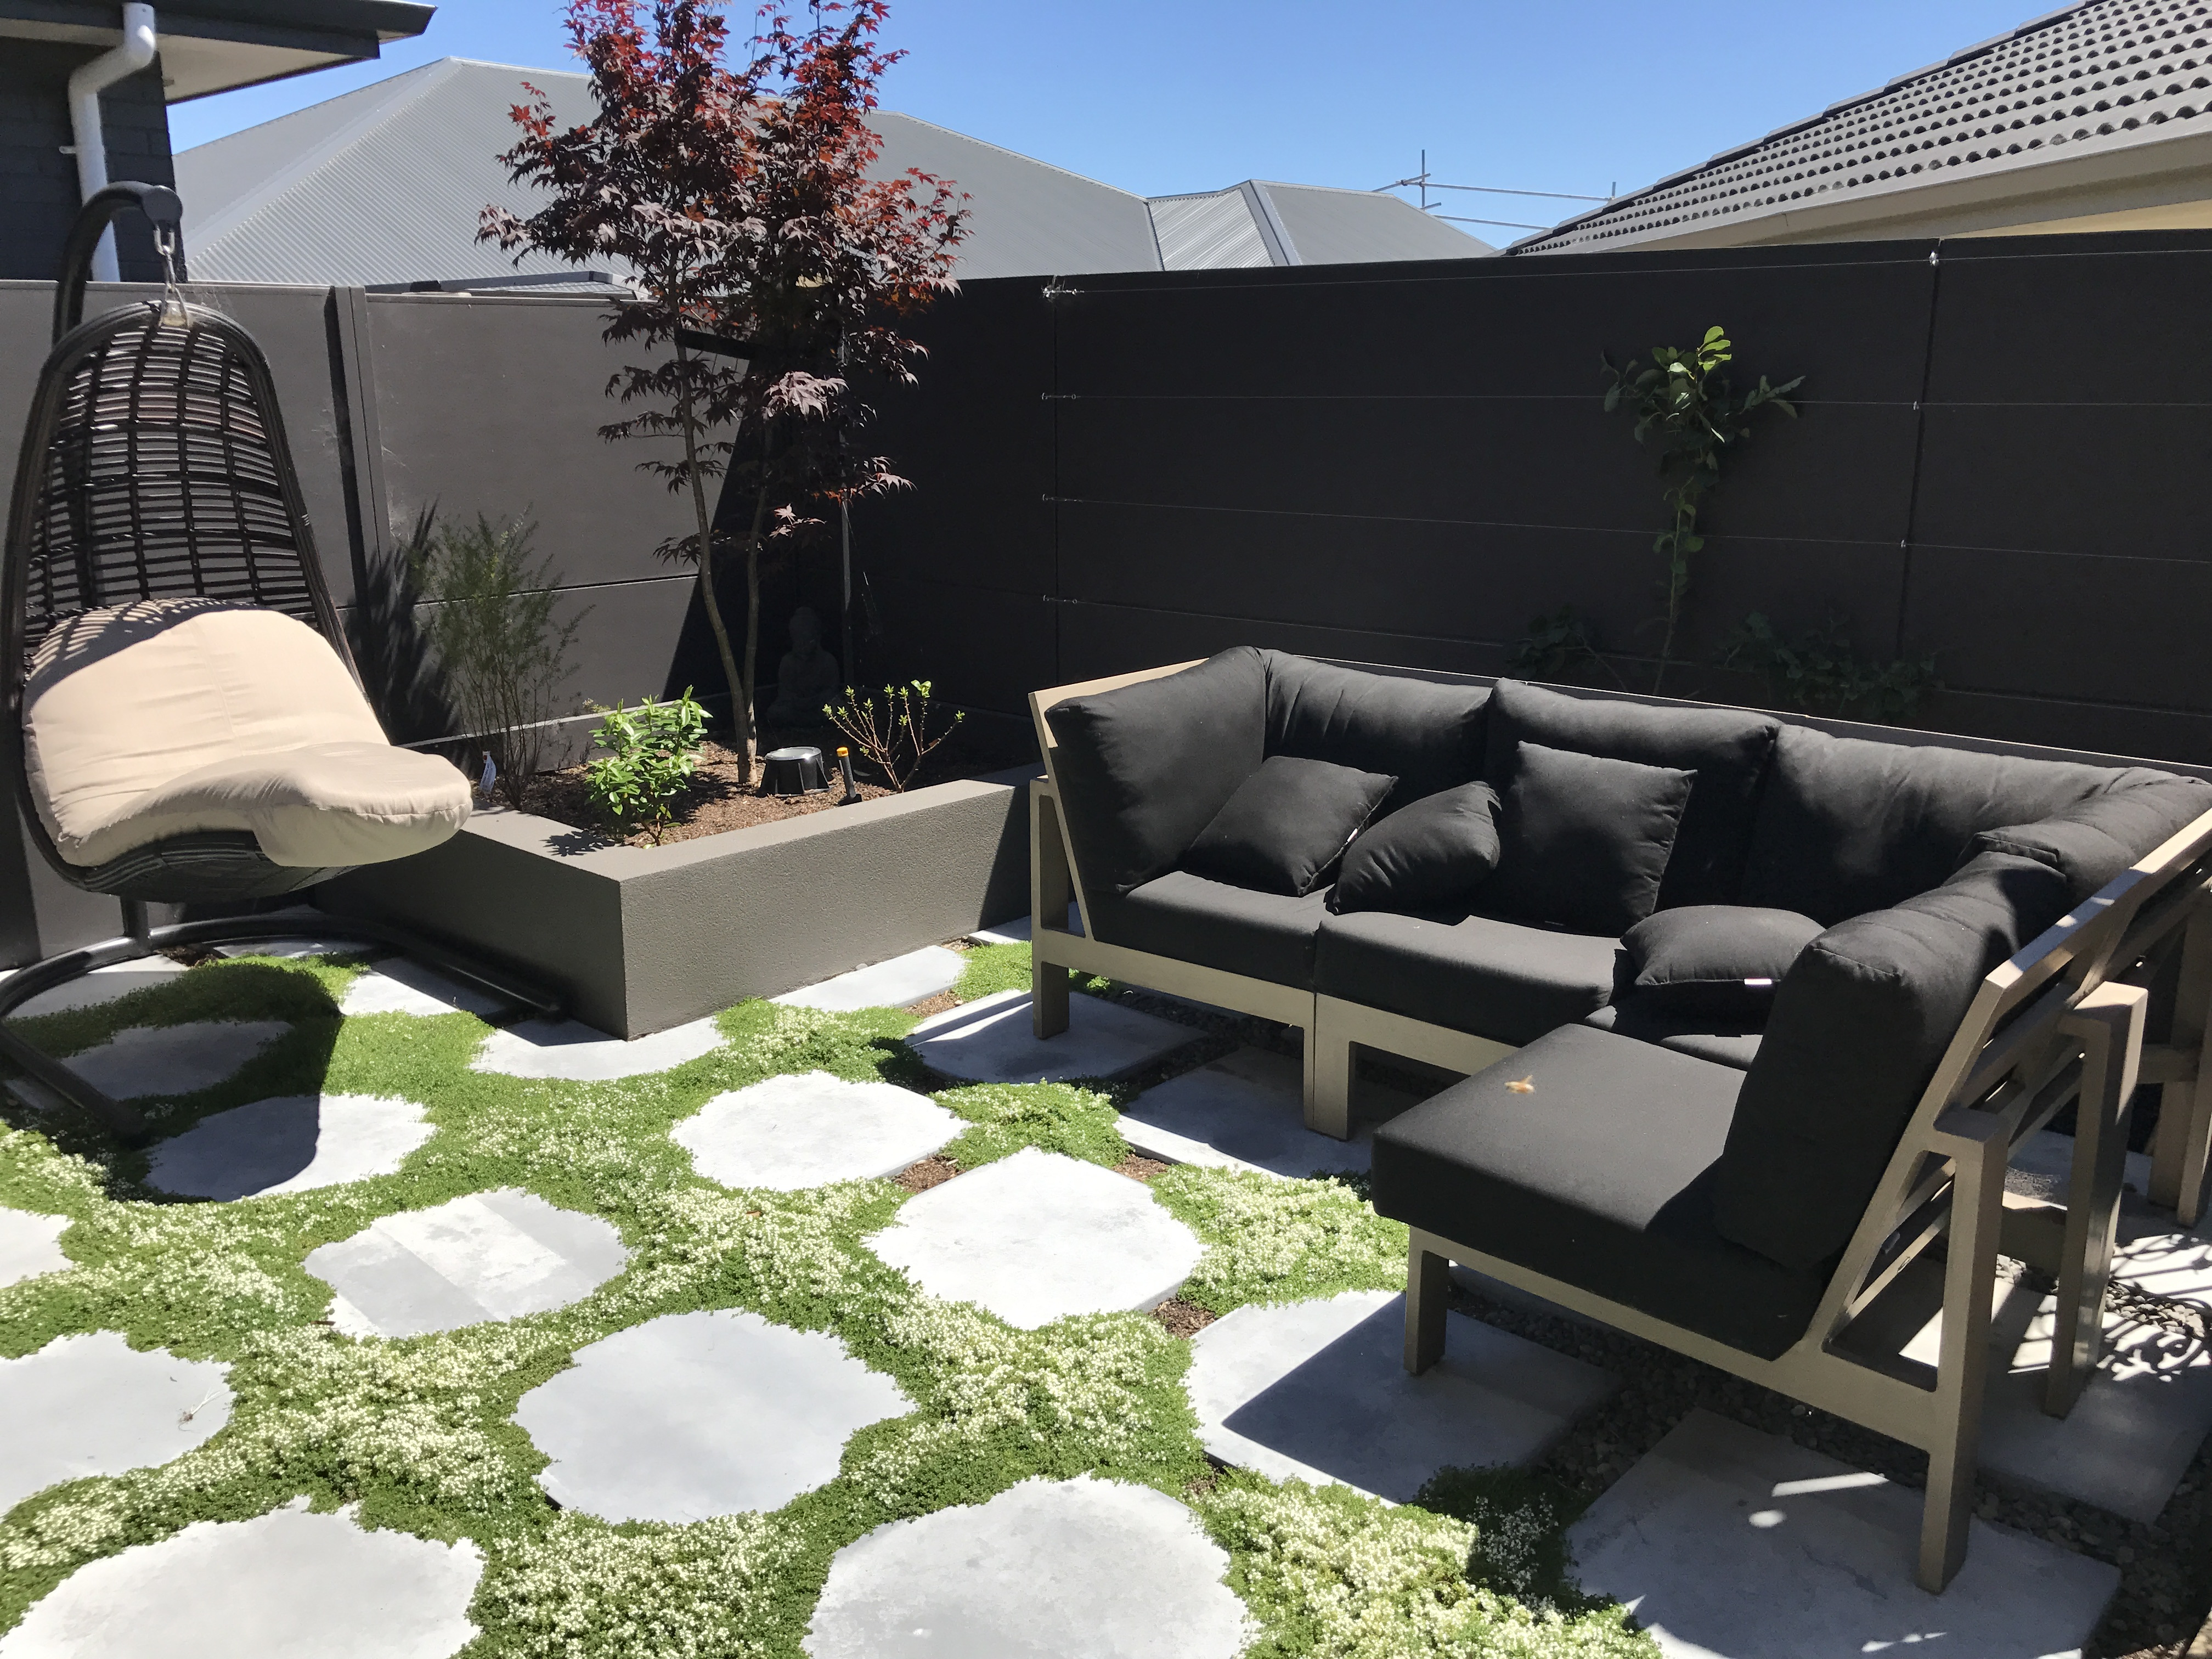 Herb garden/ chill out area